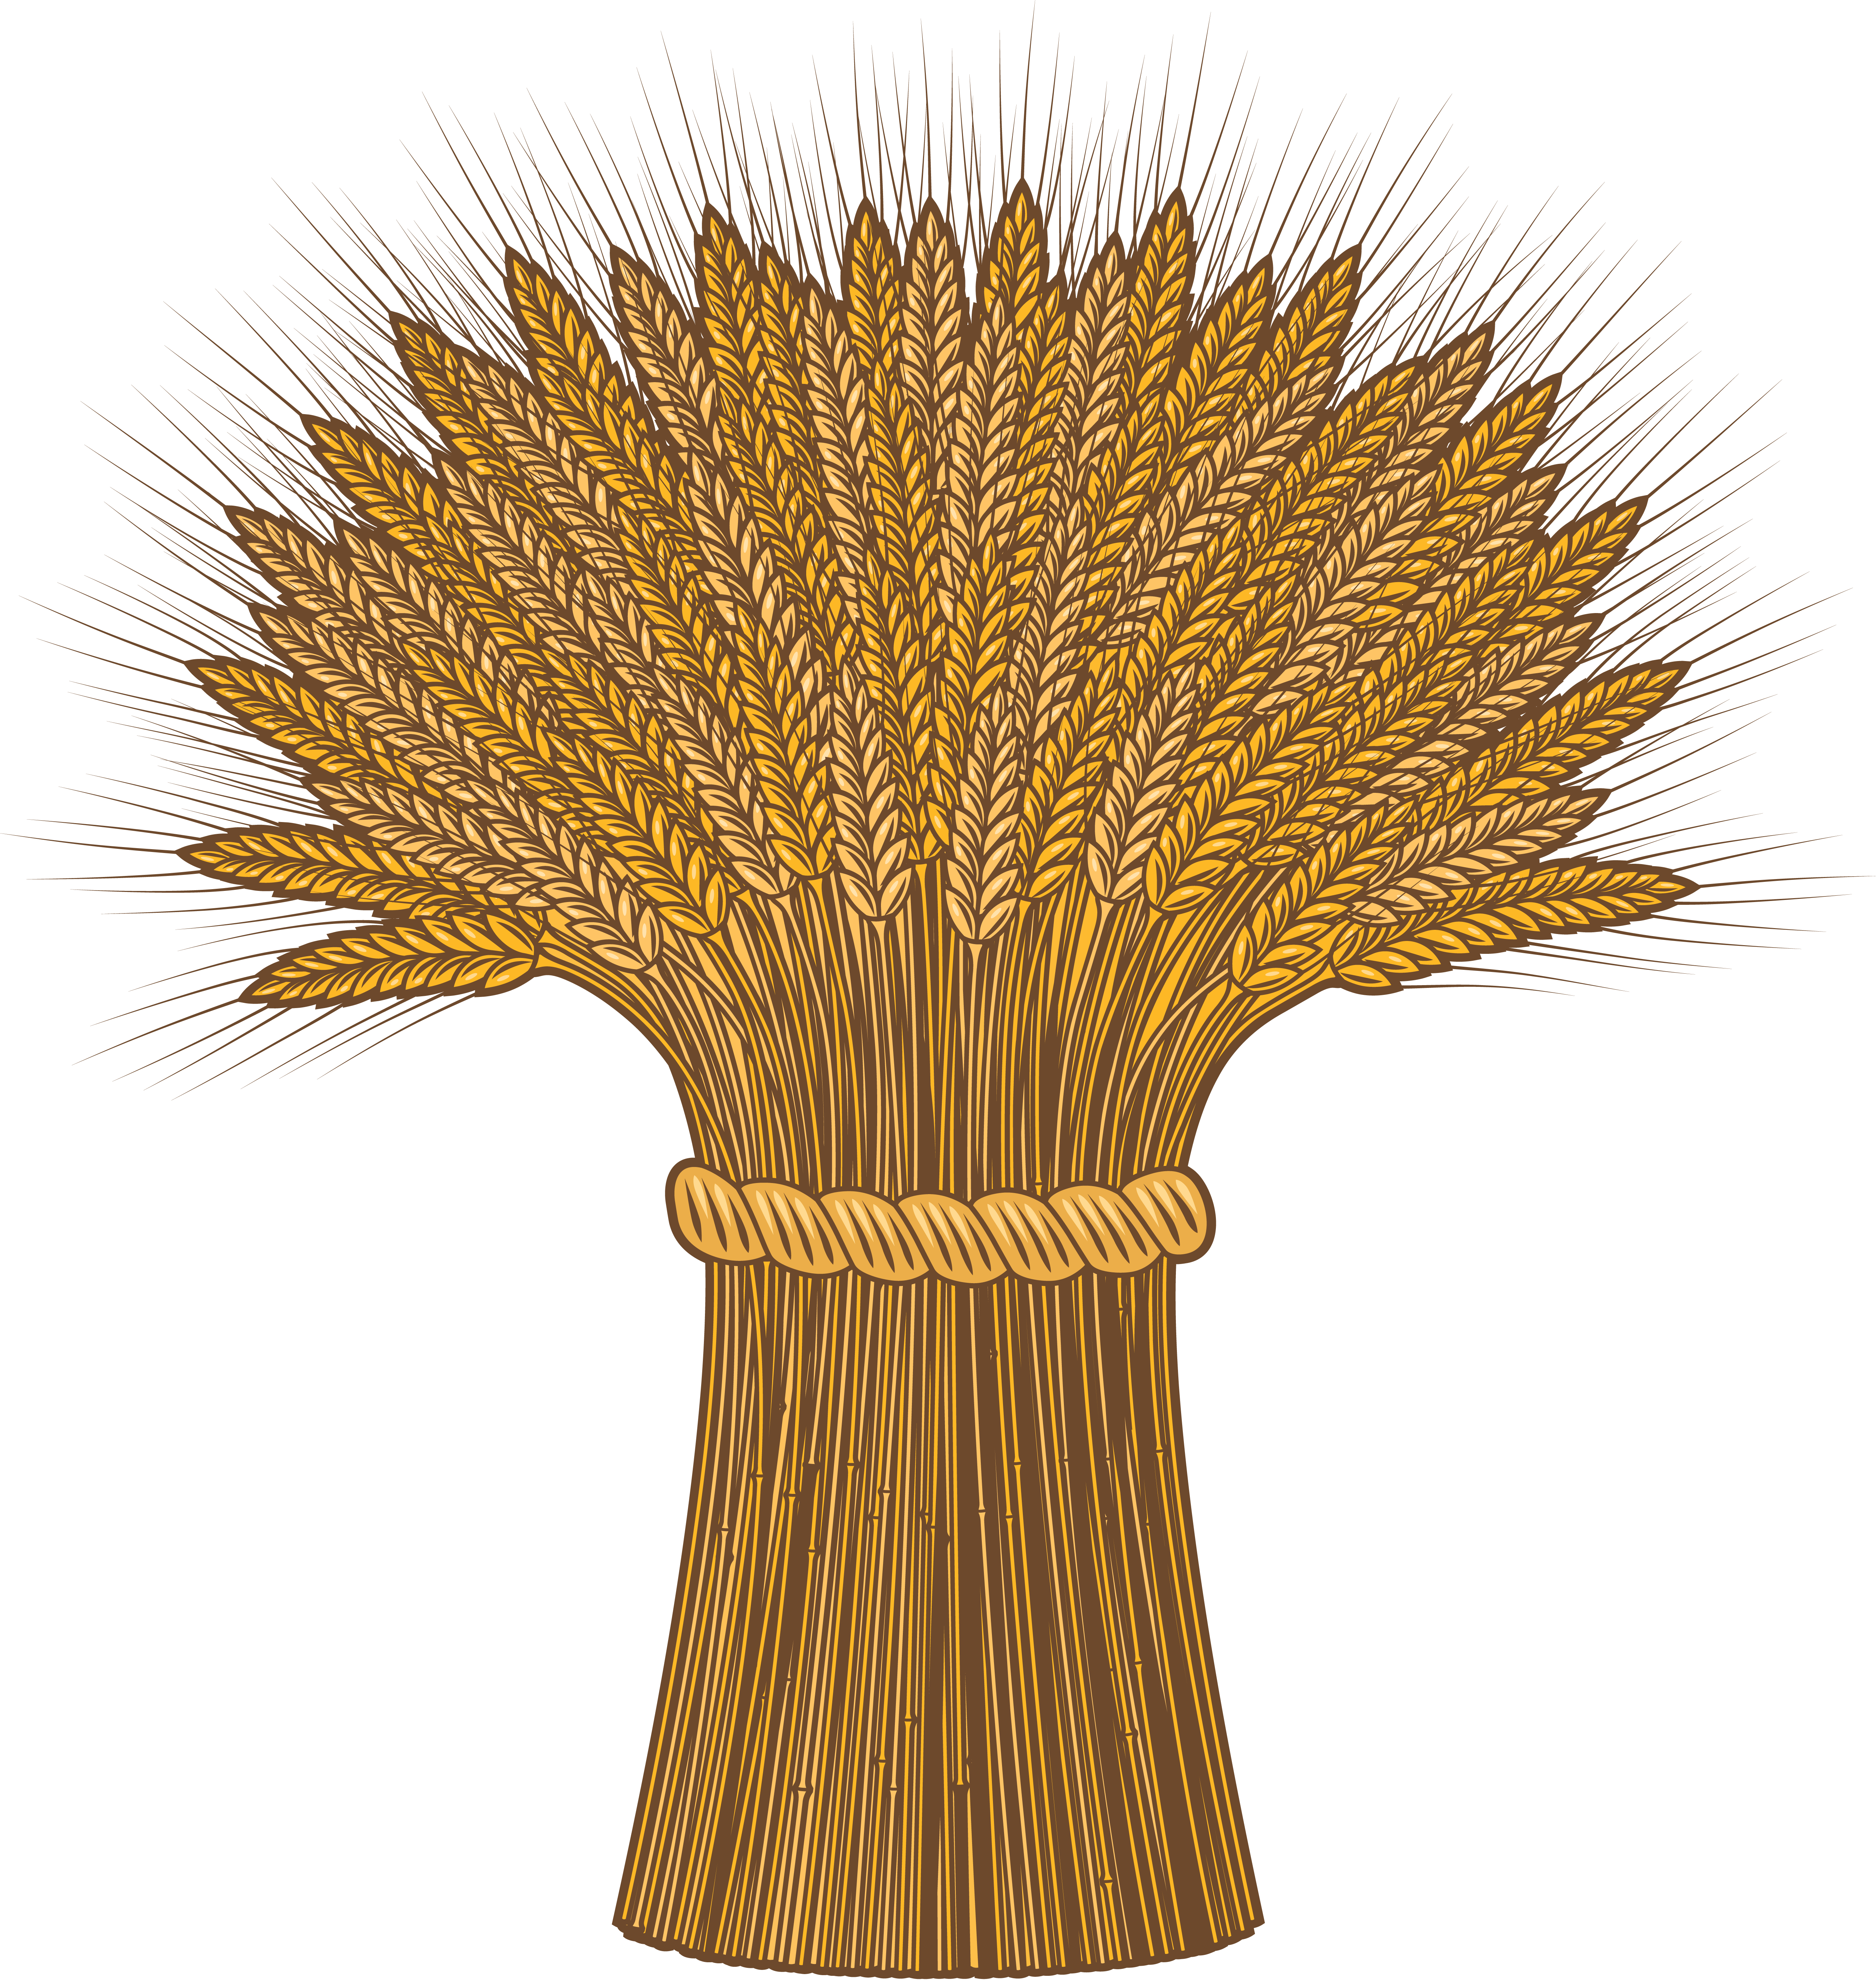 Png image purepng free. Wheat clipart green